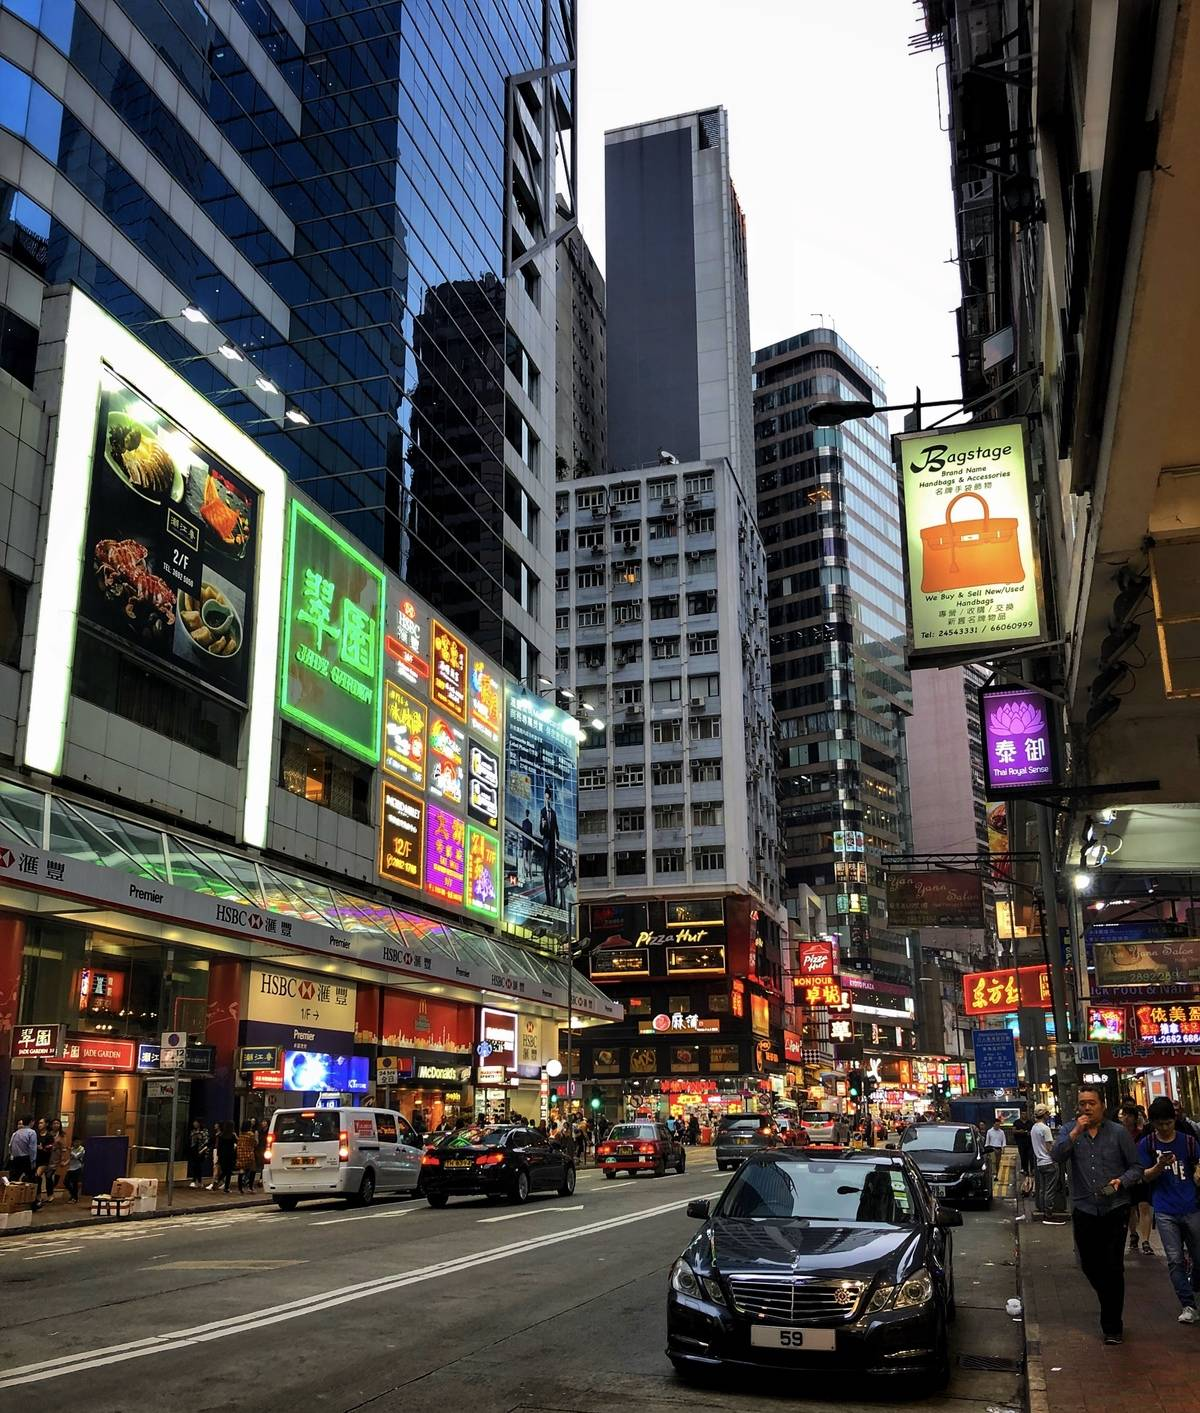 Neon signs and traffic in Causeway Bay, hong Kong